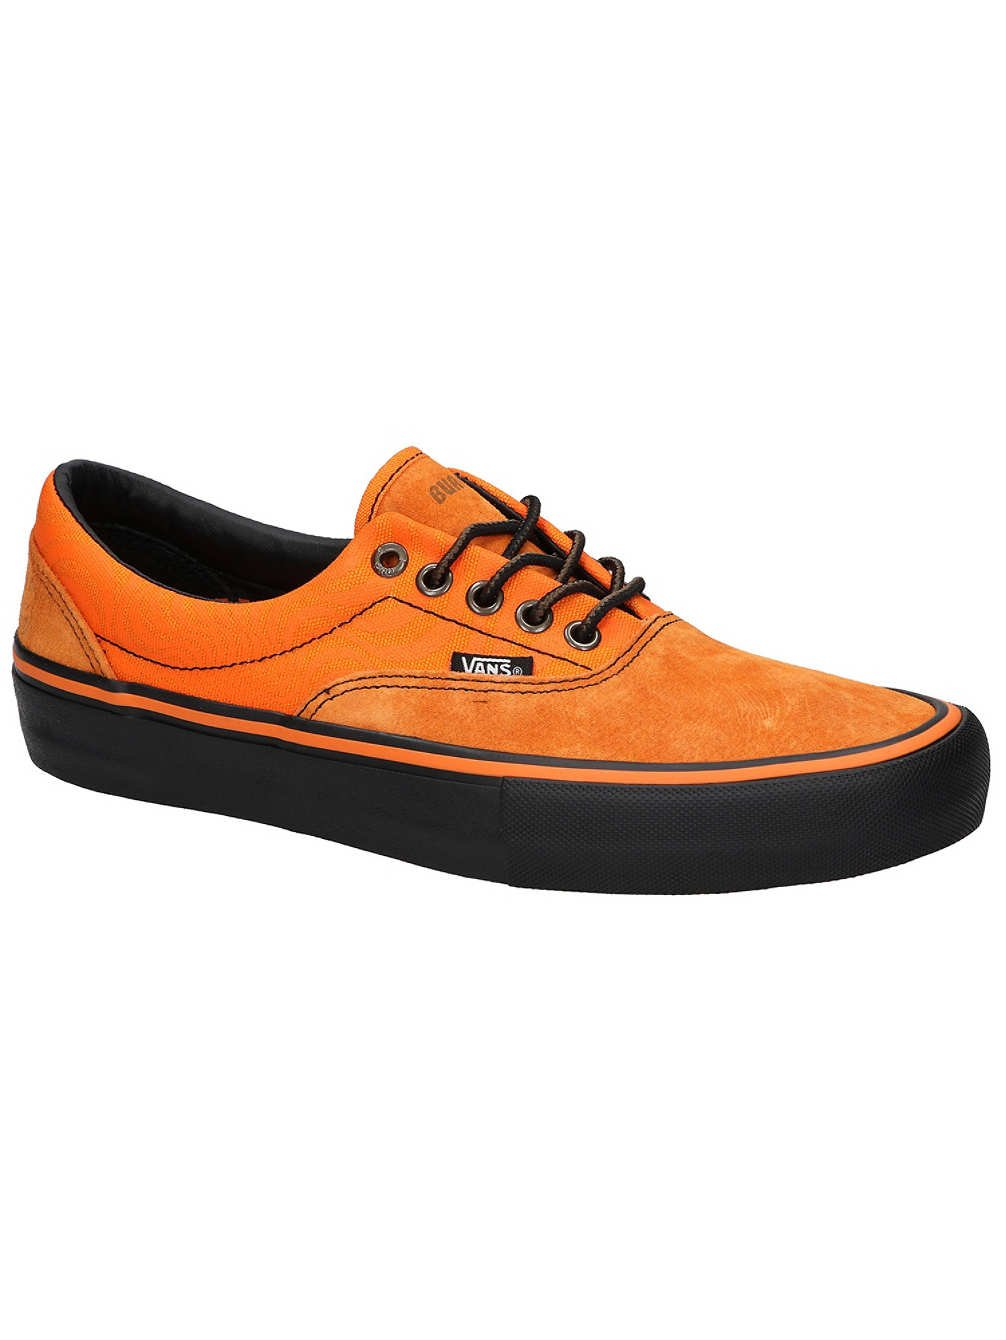 5649dd5d140c65 Vans Era Pro Shoes 9.5 B(M) US Women   8 D(M) US (Spitfire) Cardiel Orange